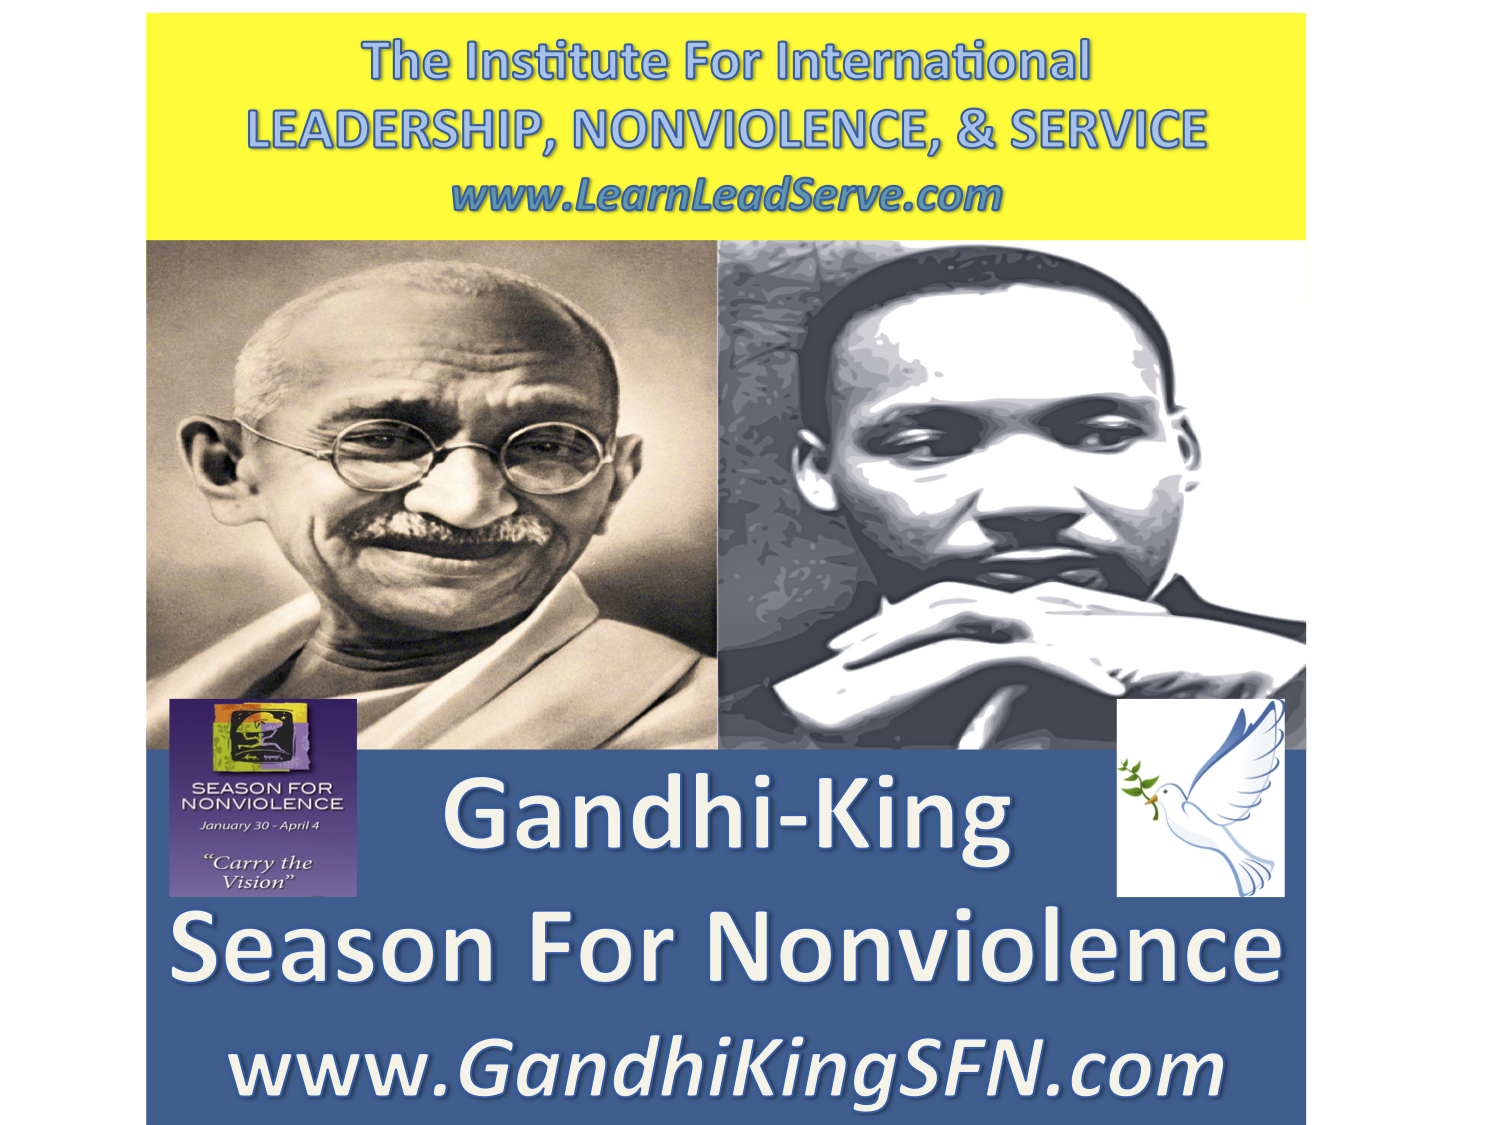 Gandhi-King Season For Nonviolence